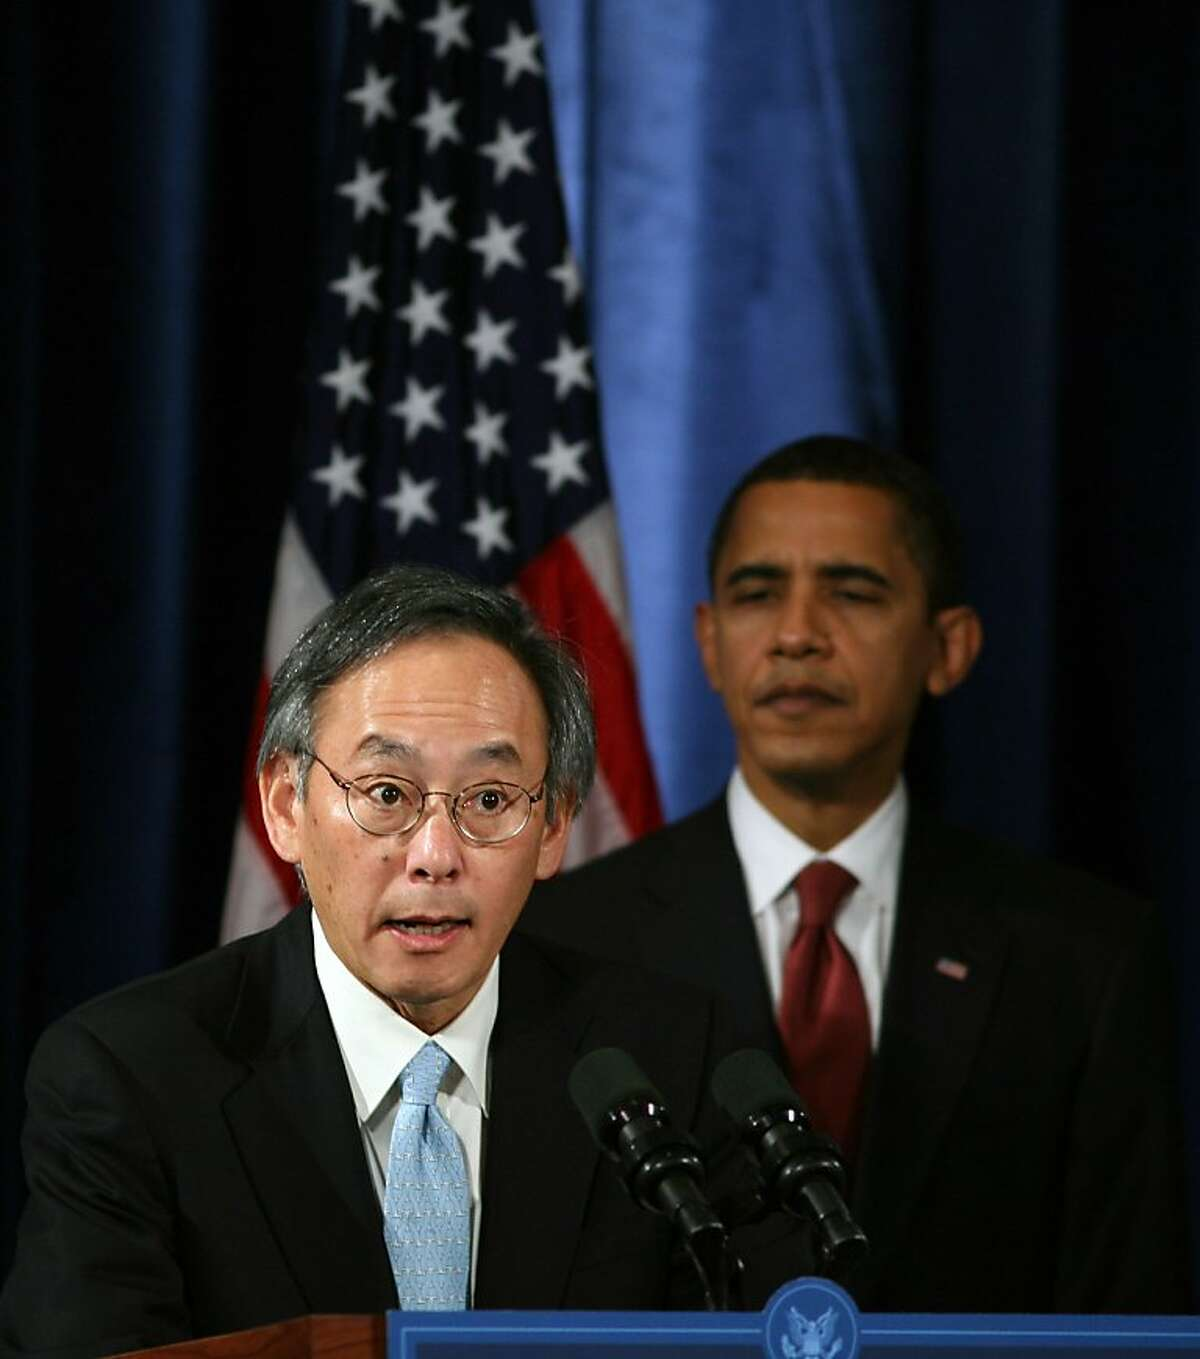 (NYT24) CHICAGO -- Dec. 22, 2008 -- SCI-BERKELEY-LAB -- President-elect Barack Obama looks on as Steven Chu, his choice to head the Energy Department, speaks at a news conference in Chicago on Dec. 15, 2008. For years, Chu has been unambiguous in stating that carbon dioxide emitted by cars, power plants and industry is a direct cause of global warming. (Ozier Muhammad/The New York Times)